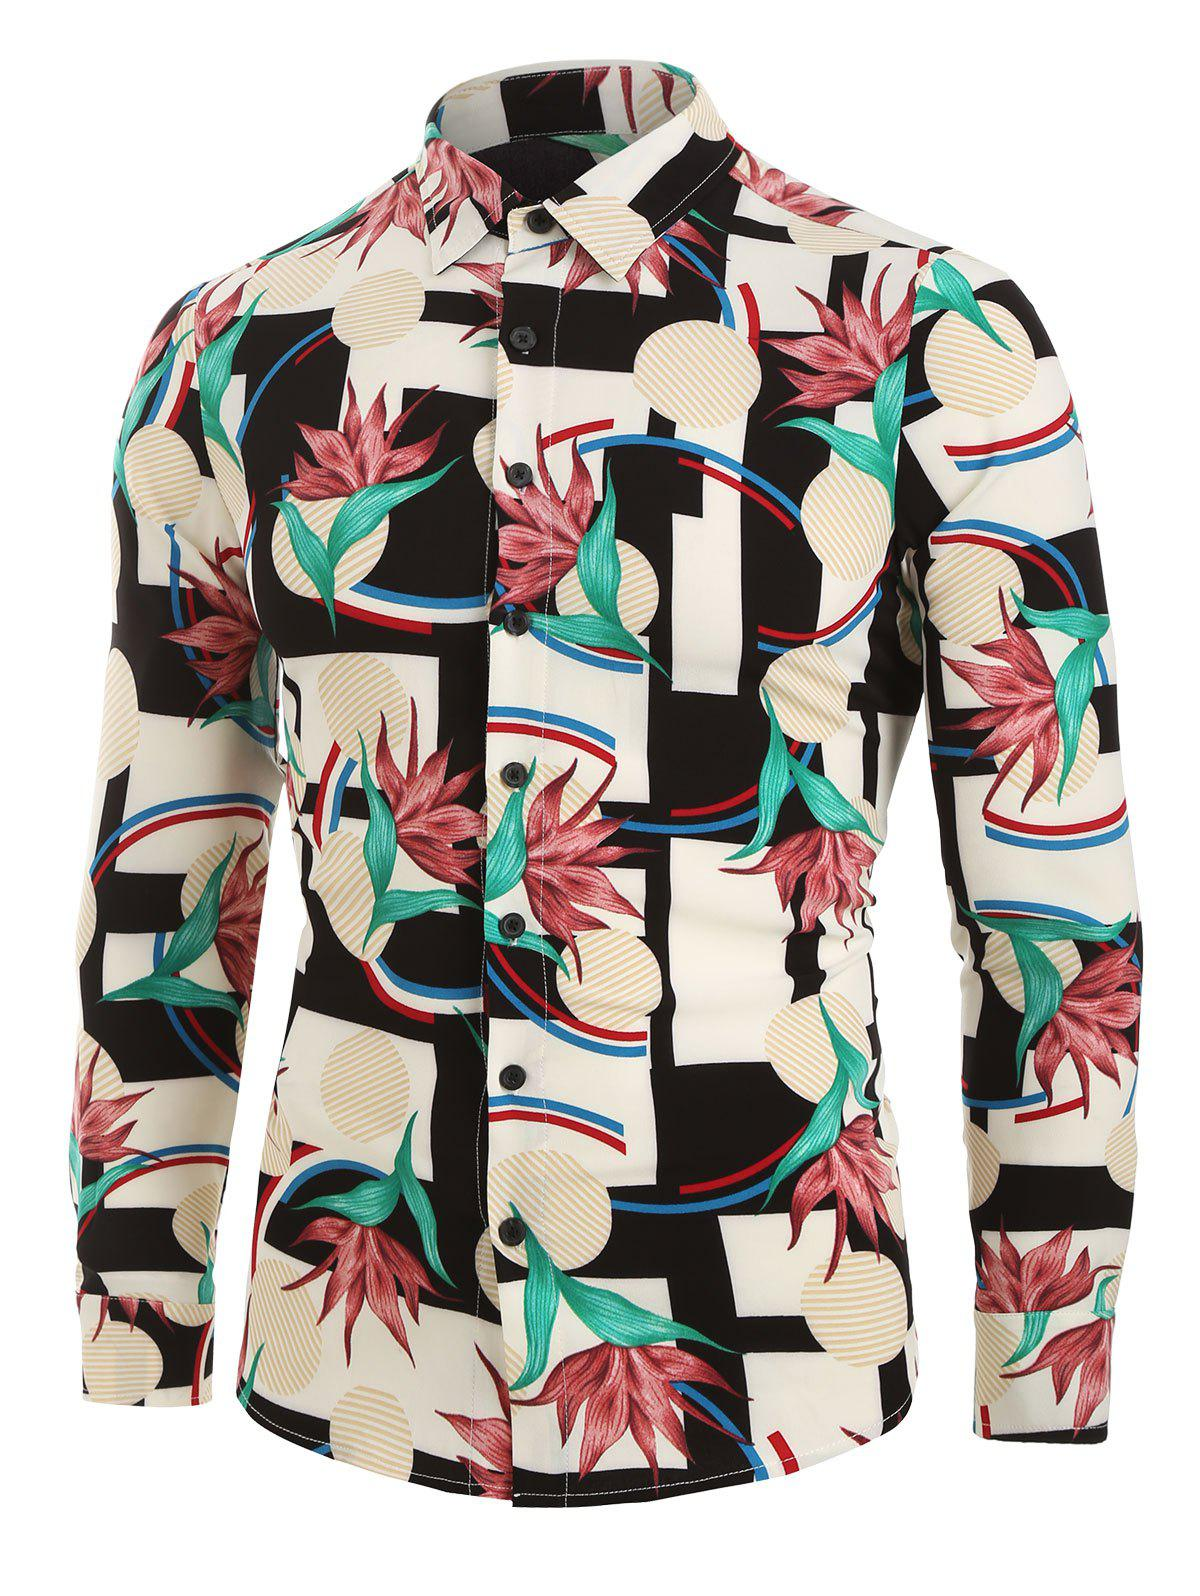 Flower Geometric Print Button Up Shirt - multicolor A M